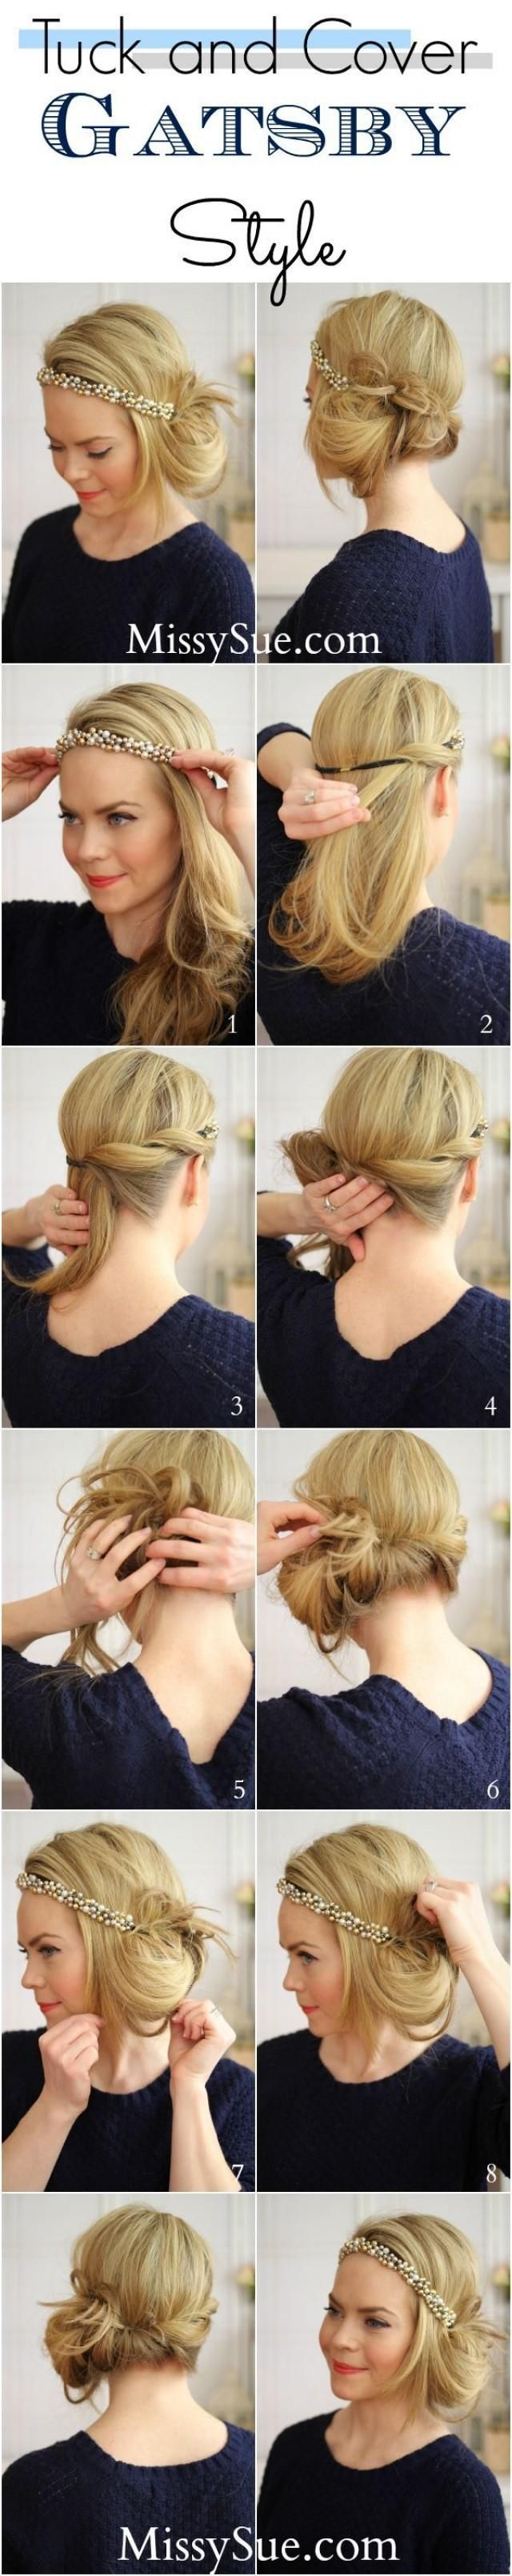 Could be a twist on my daily messy bun/pony tail... Tuck and Cover, Great Gatsby Style